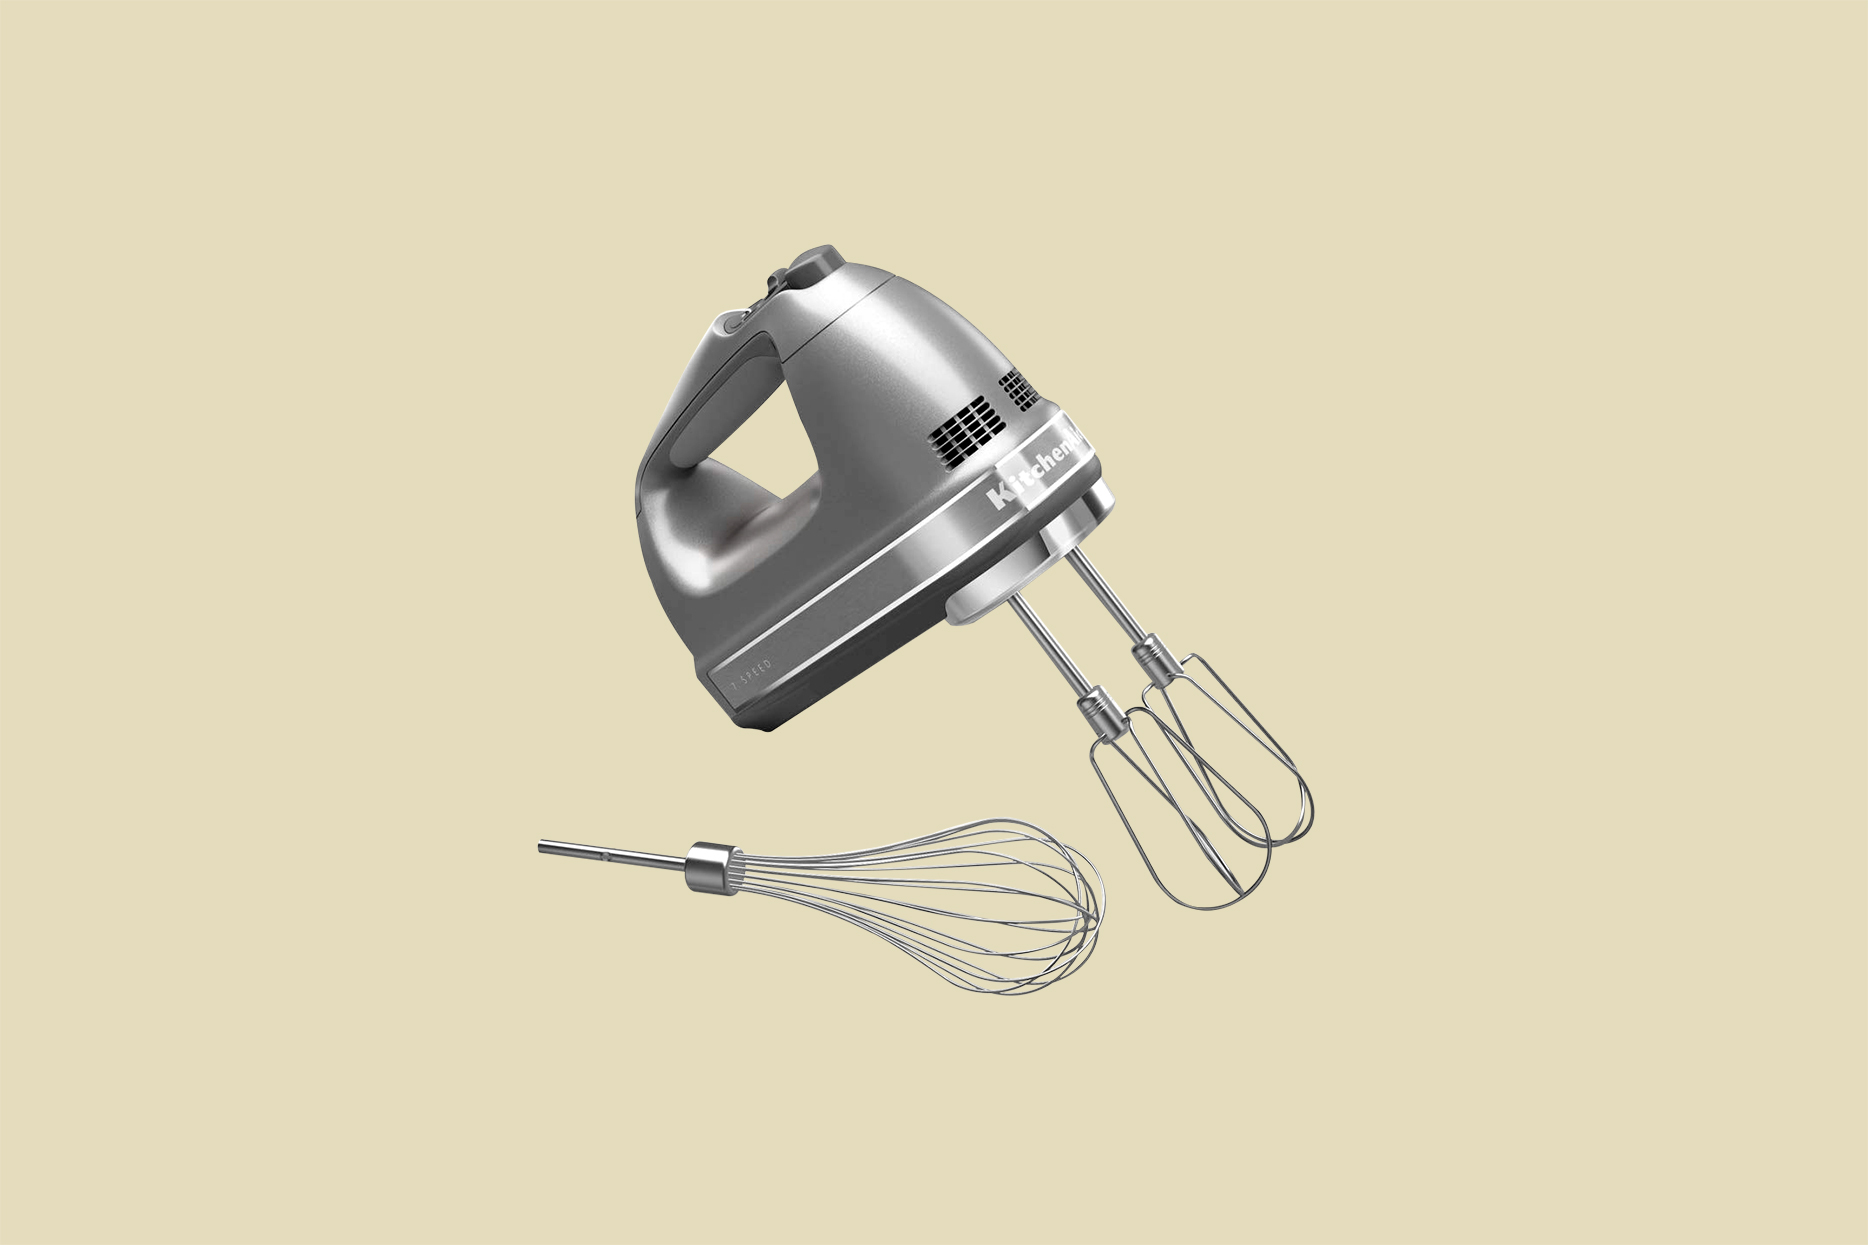 KitchenAid 7-Speed Digital Hand Mixer with Turbo Beater II Accessories and Pro Whisk in Contour Silver